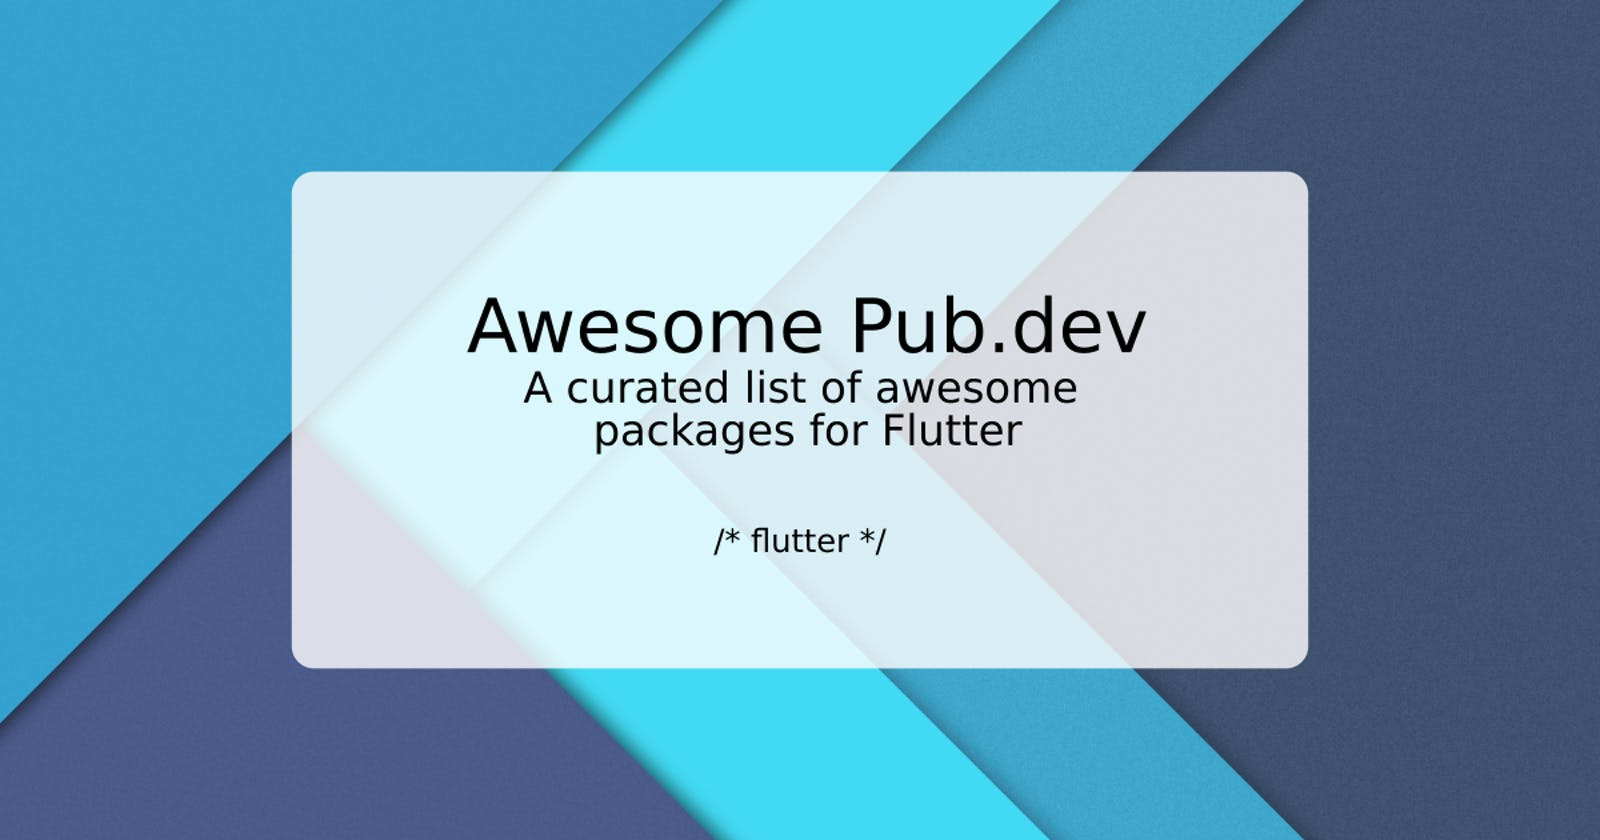 Awesome Pub.dev - A curated list of awesome packages for Flutter